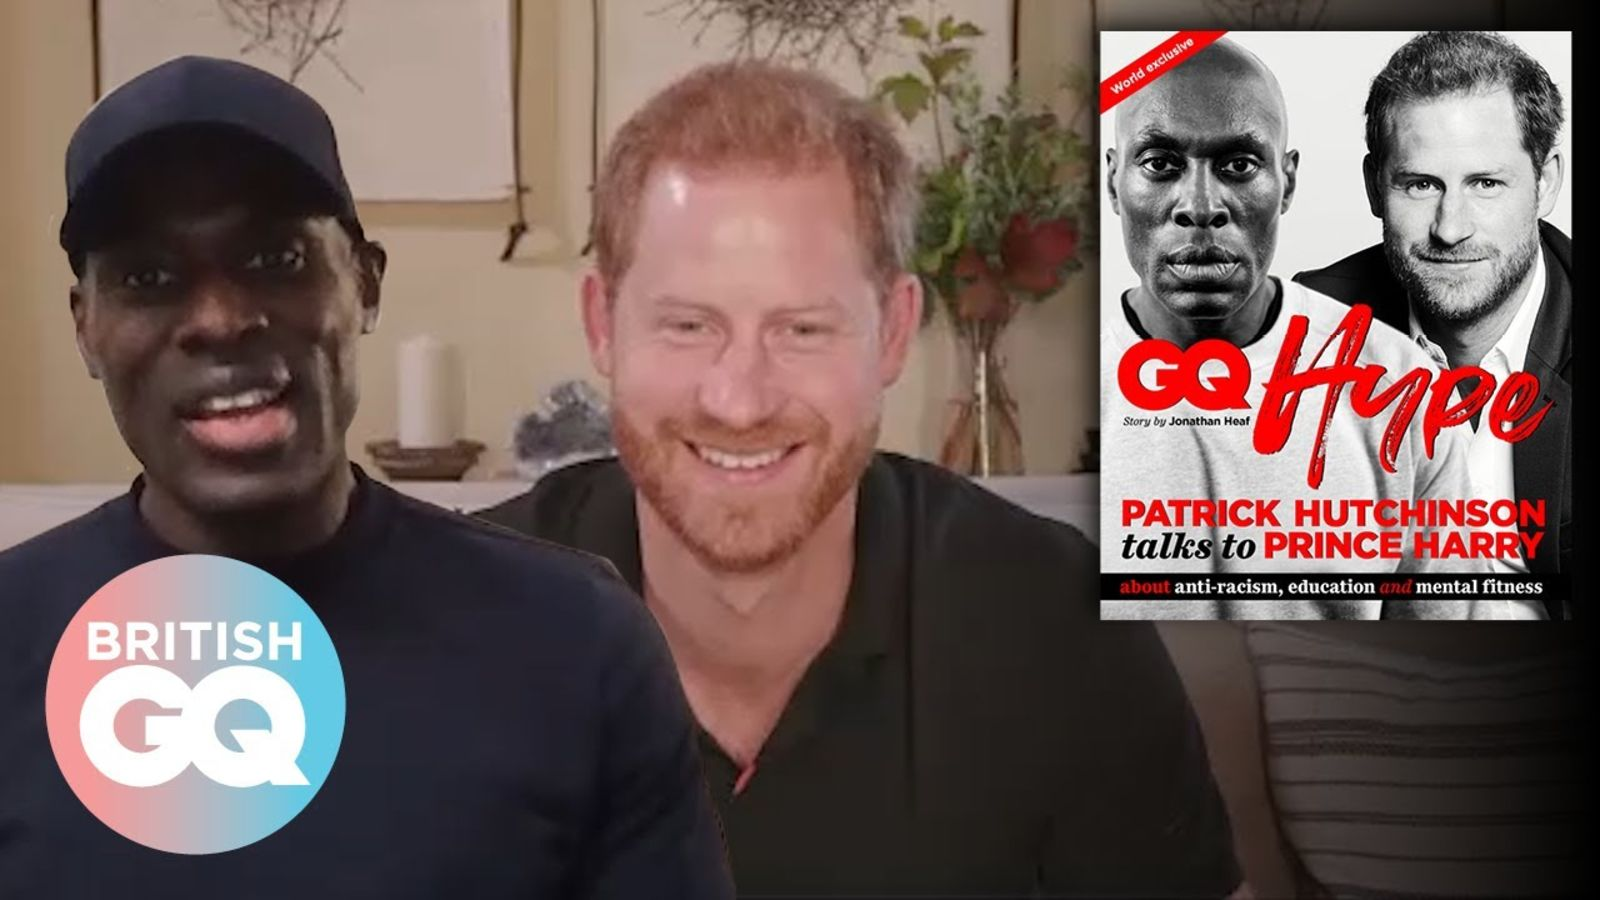 Prince Harry and Patrick Hutchinson discuss how to further anti-racism